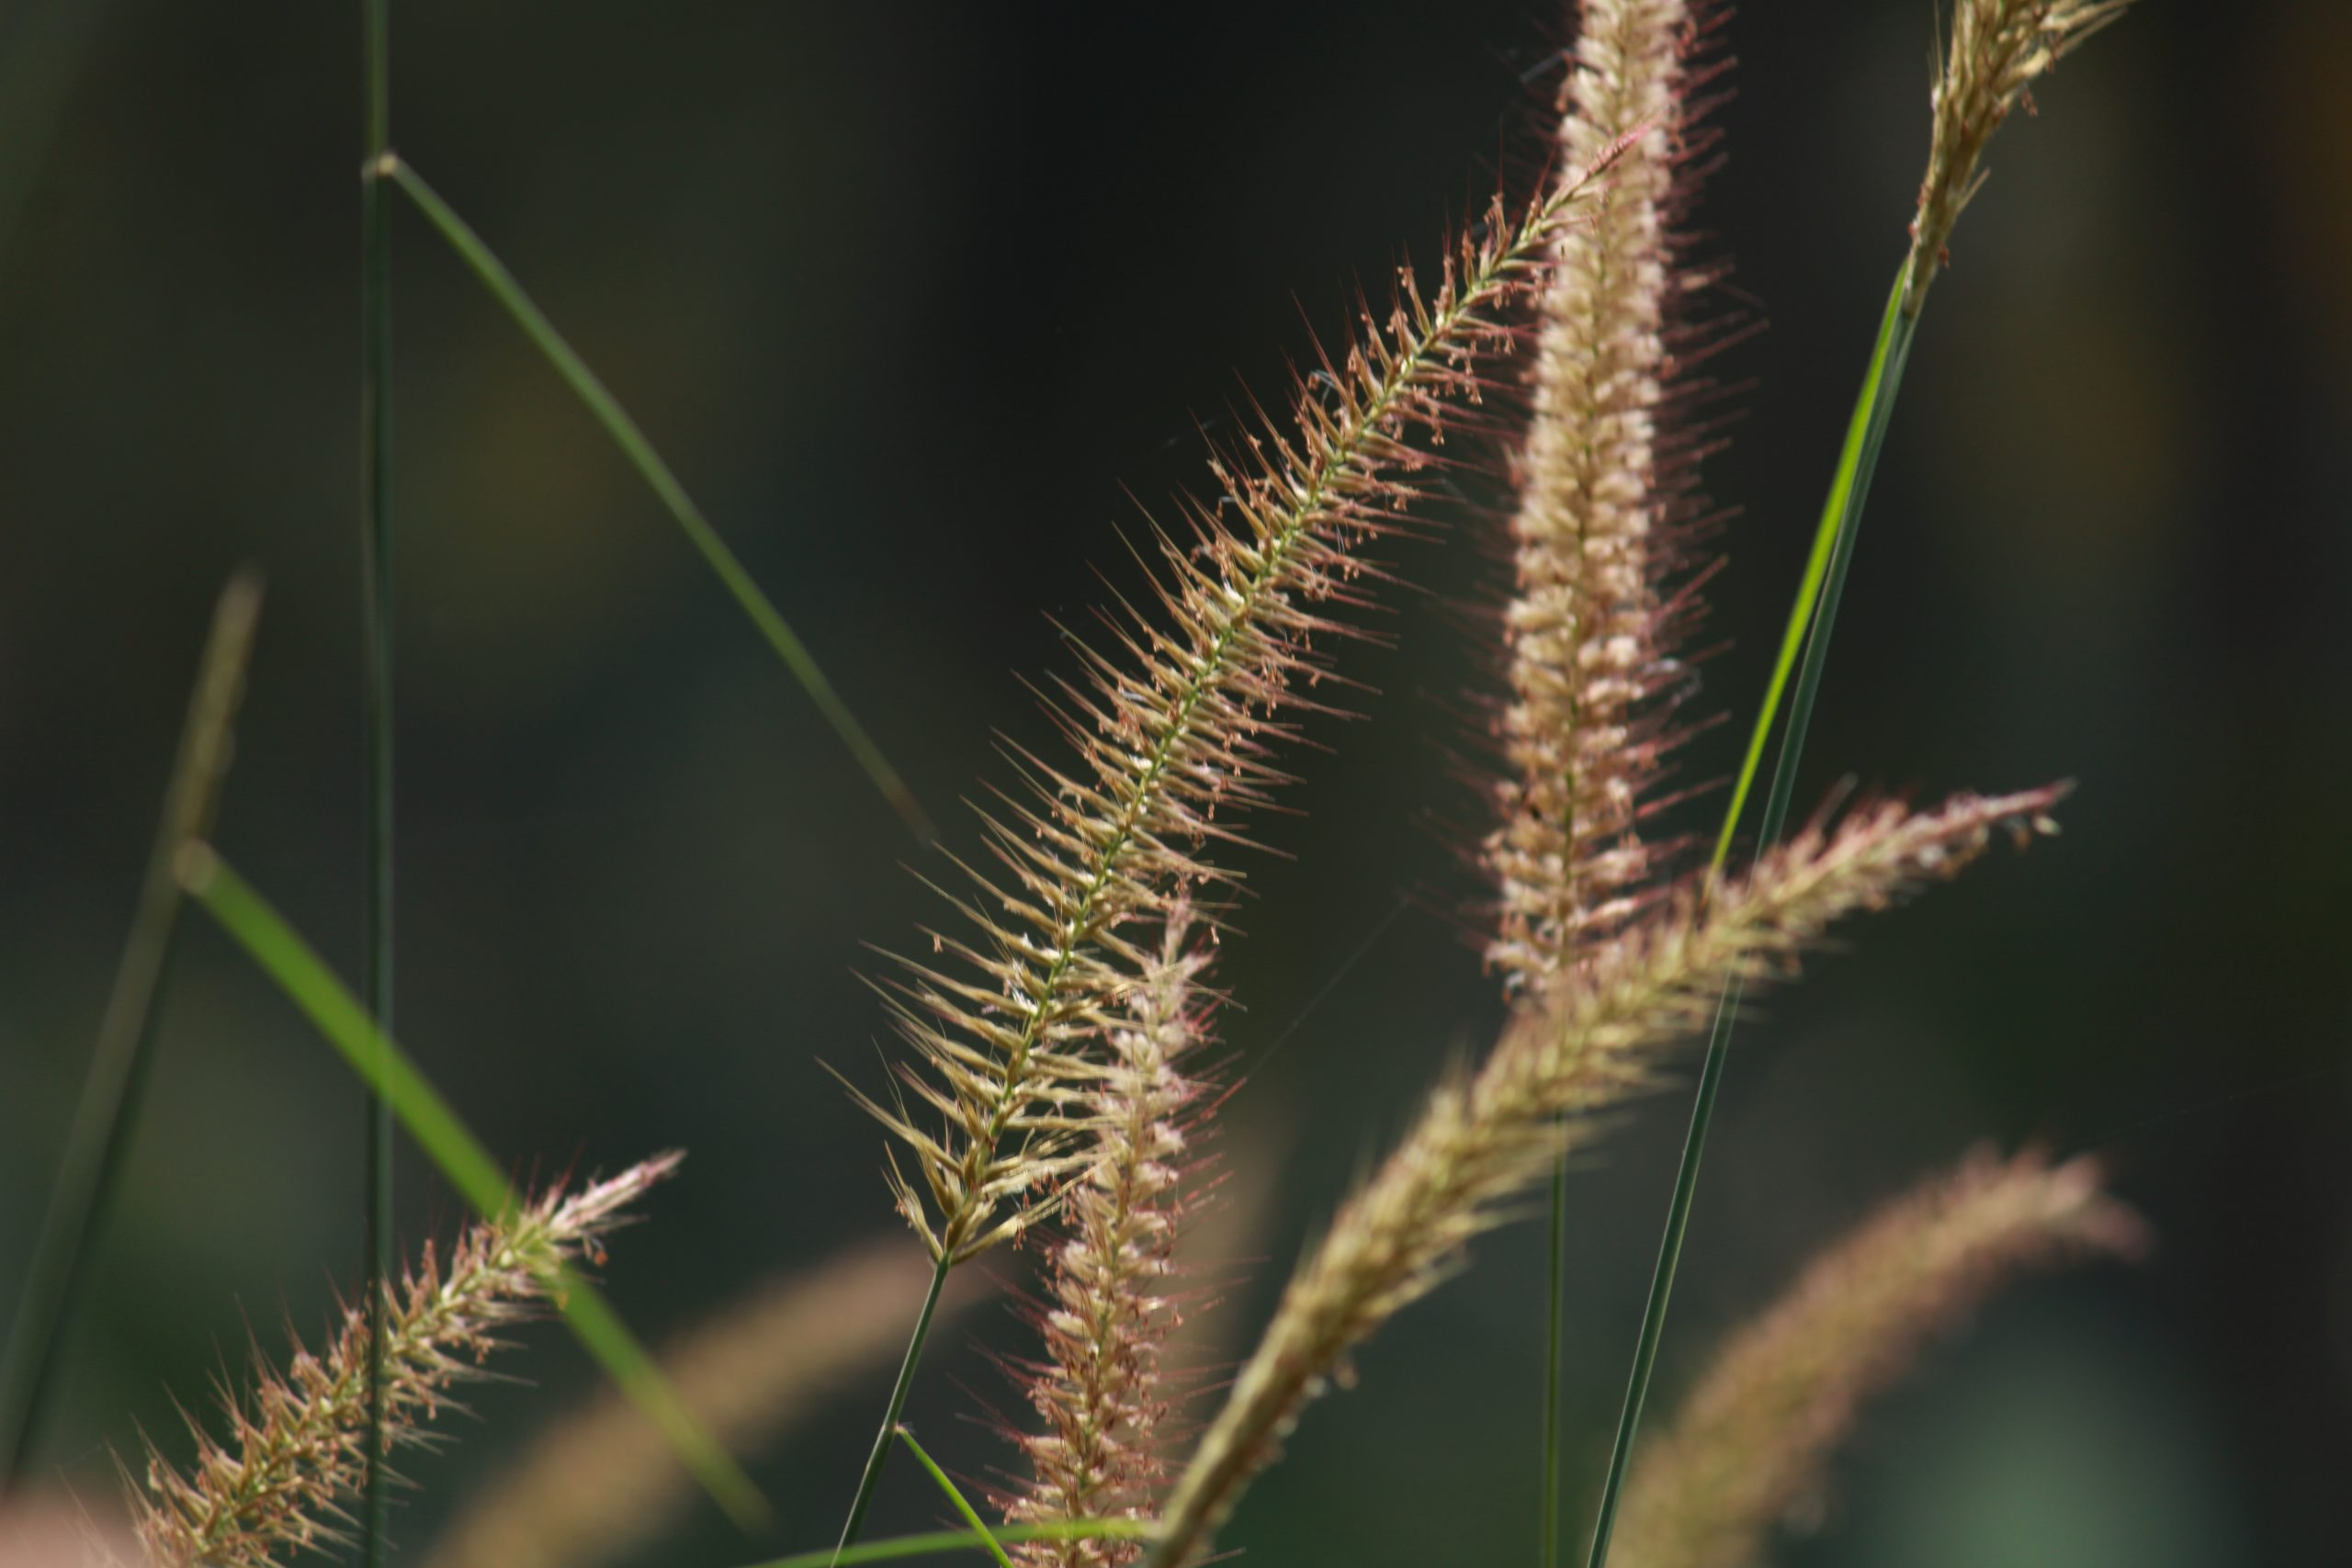 Flowers of grass plants